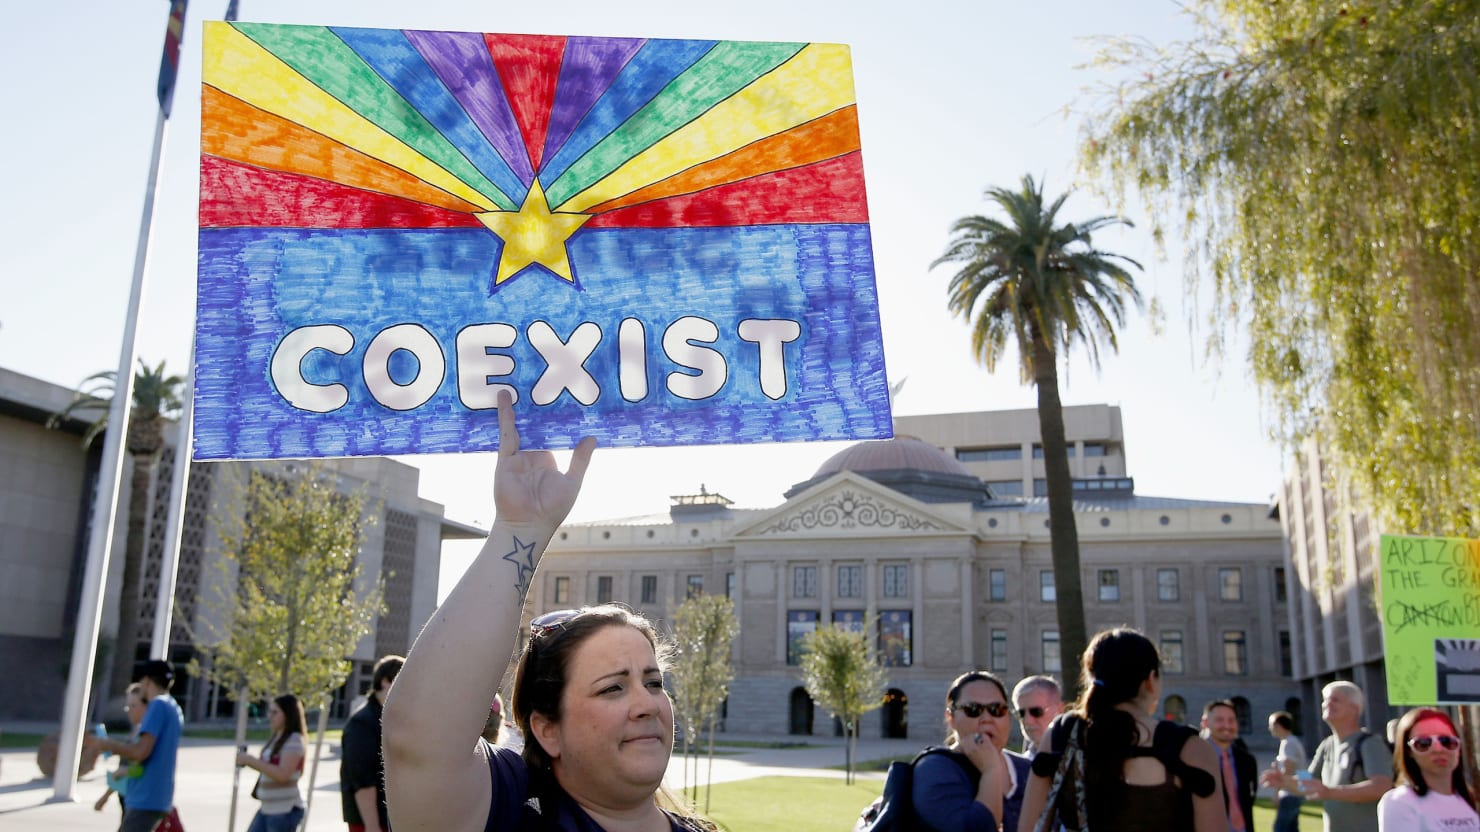 Are Opponents of Arizona's Anti-Gay Law Eager to Deceive?